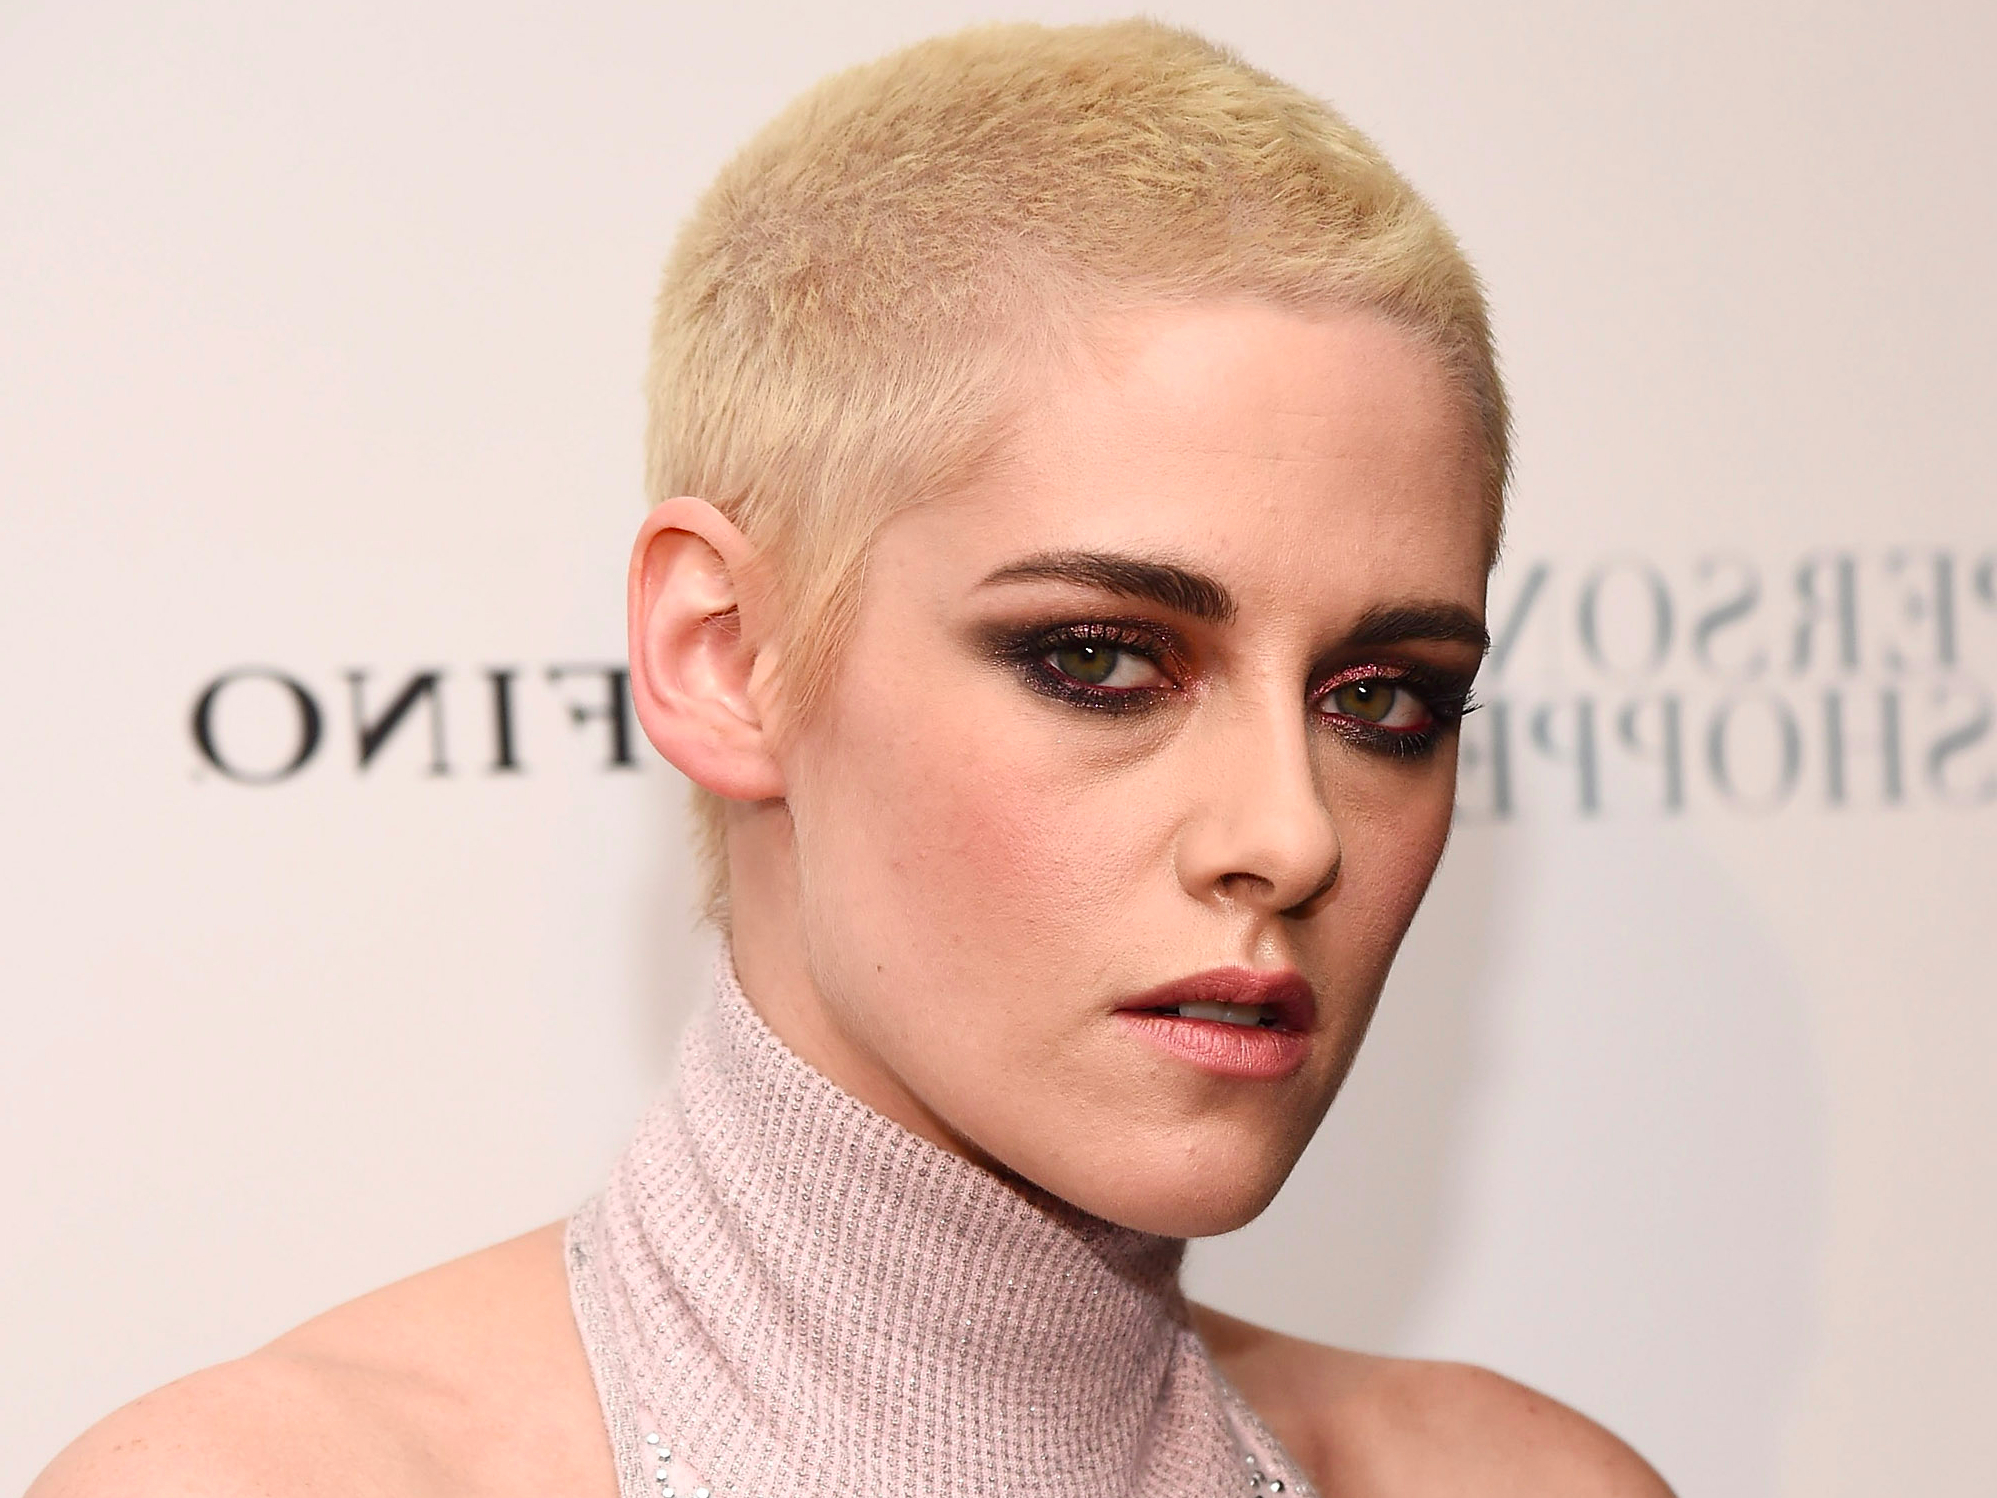 The Reason Why Kristen Stewart Shaved And Dyed Her Hair – Business Regarding Short Hairstyles With Flicks (View 19 of 20)